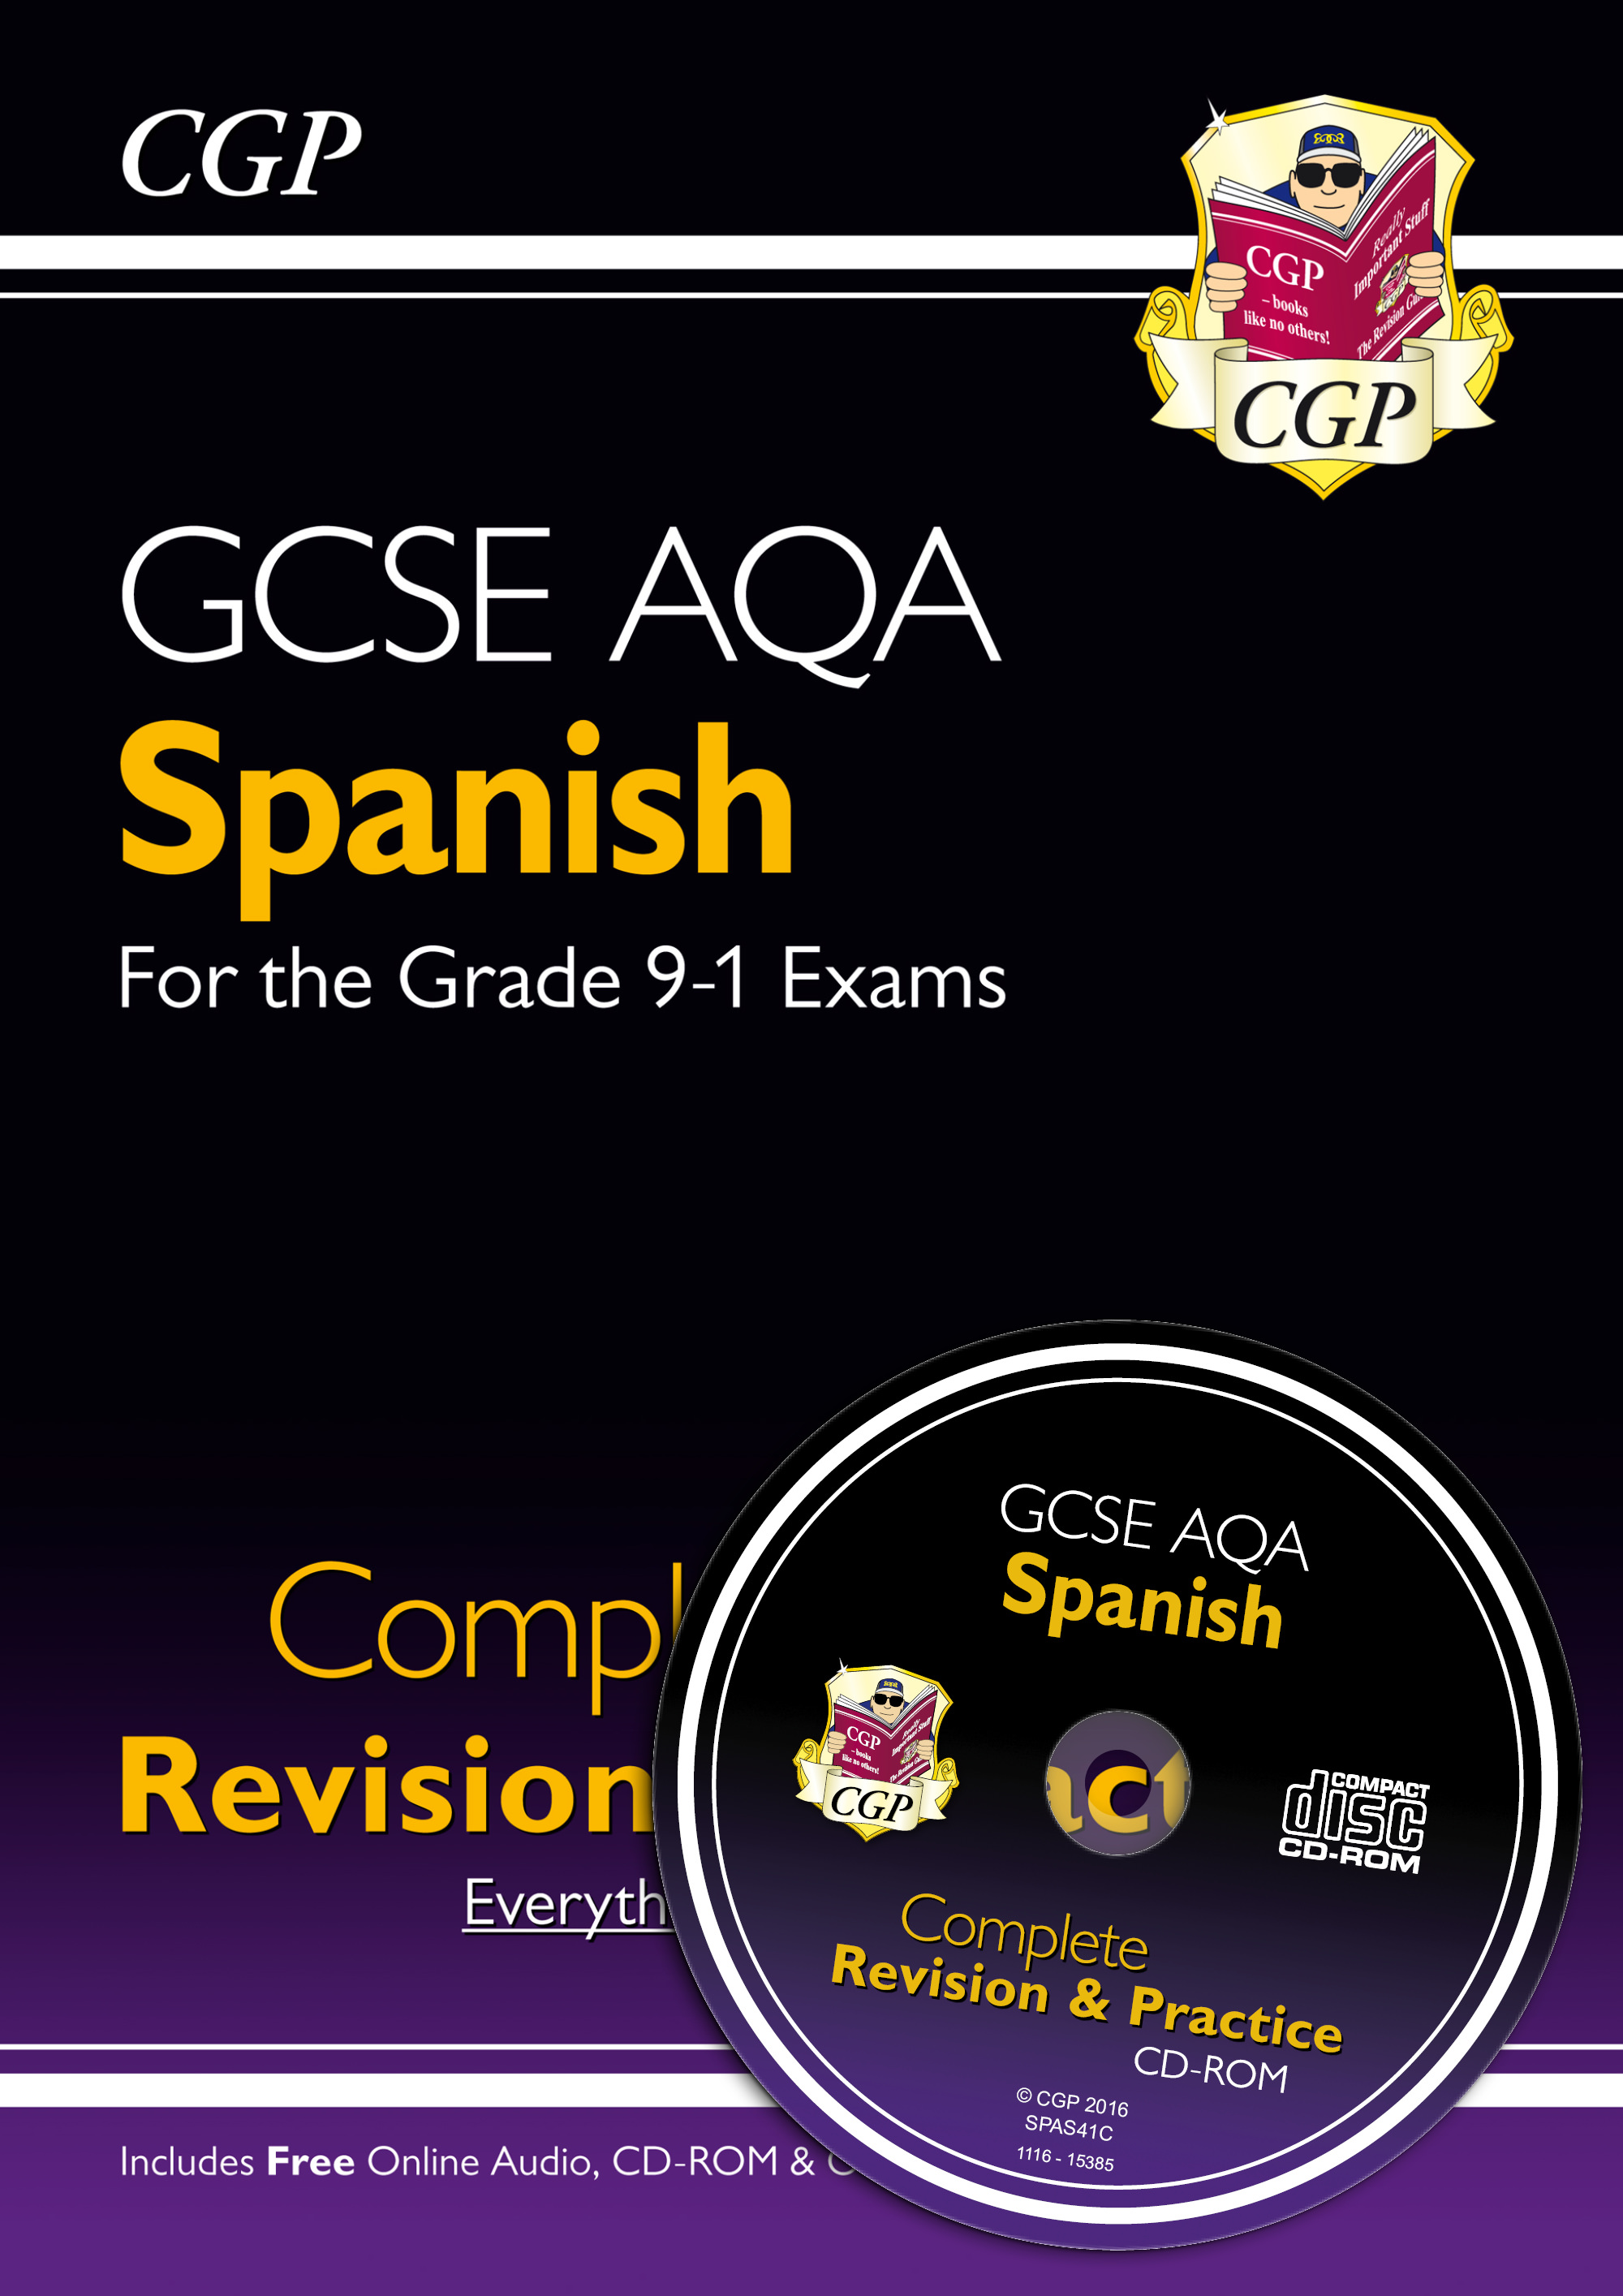 SPAS41 - New GCSE Spanish AQA Complete Revision & Practice (with CD & Online Edition) - Grade 9-1 Co